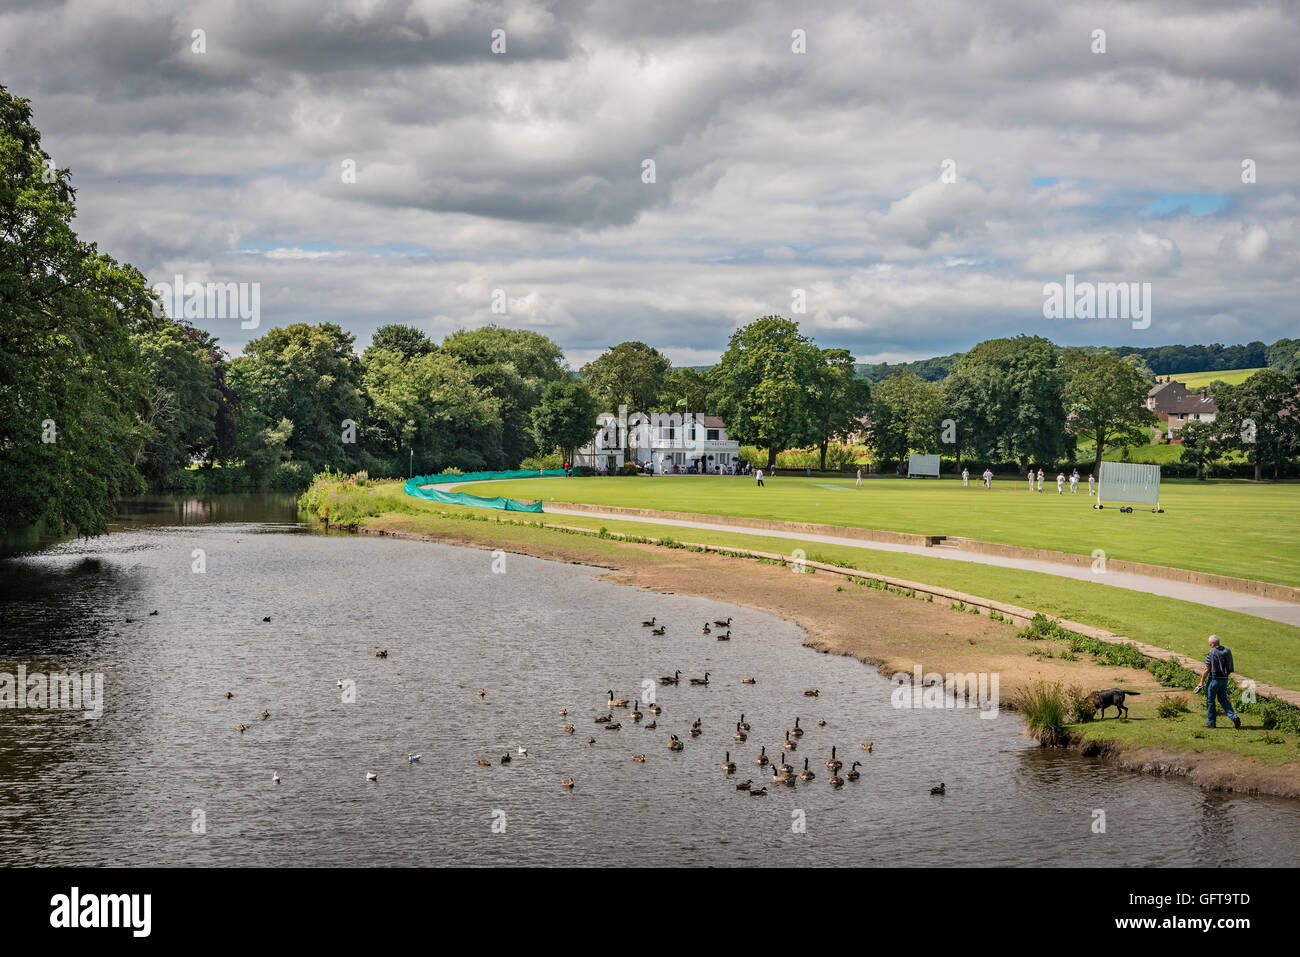 A cricket match being played at Saltaire Cricket Club in Roberts Park by the river Aire in Saltaire West Yorkshire. - Stock Image